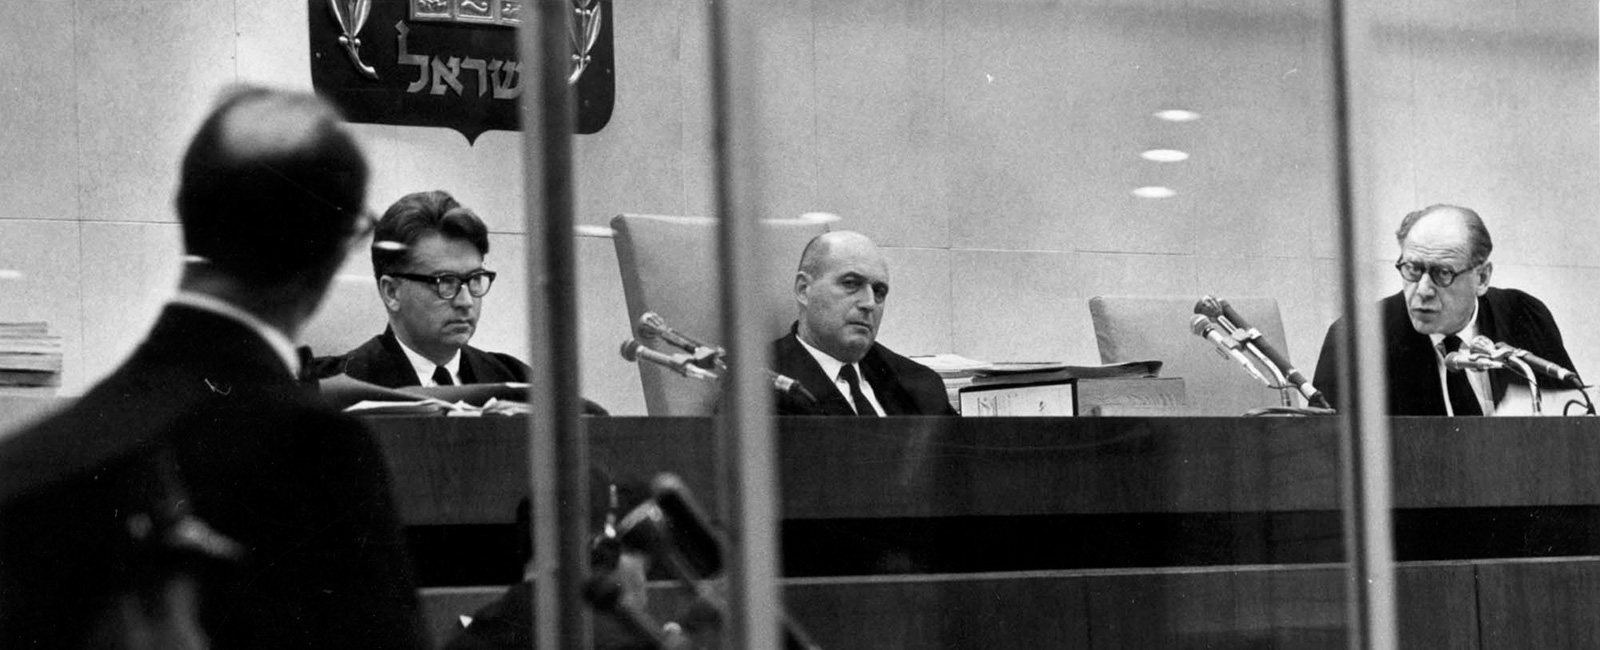 Photo Gallery - Eichmann Trial